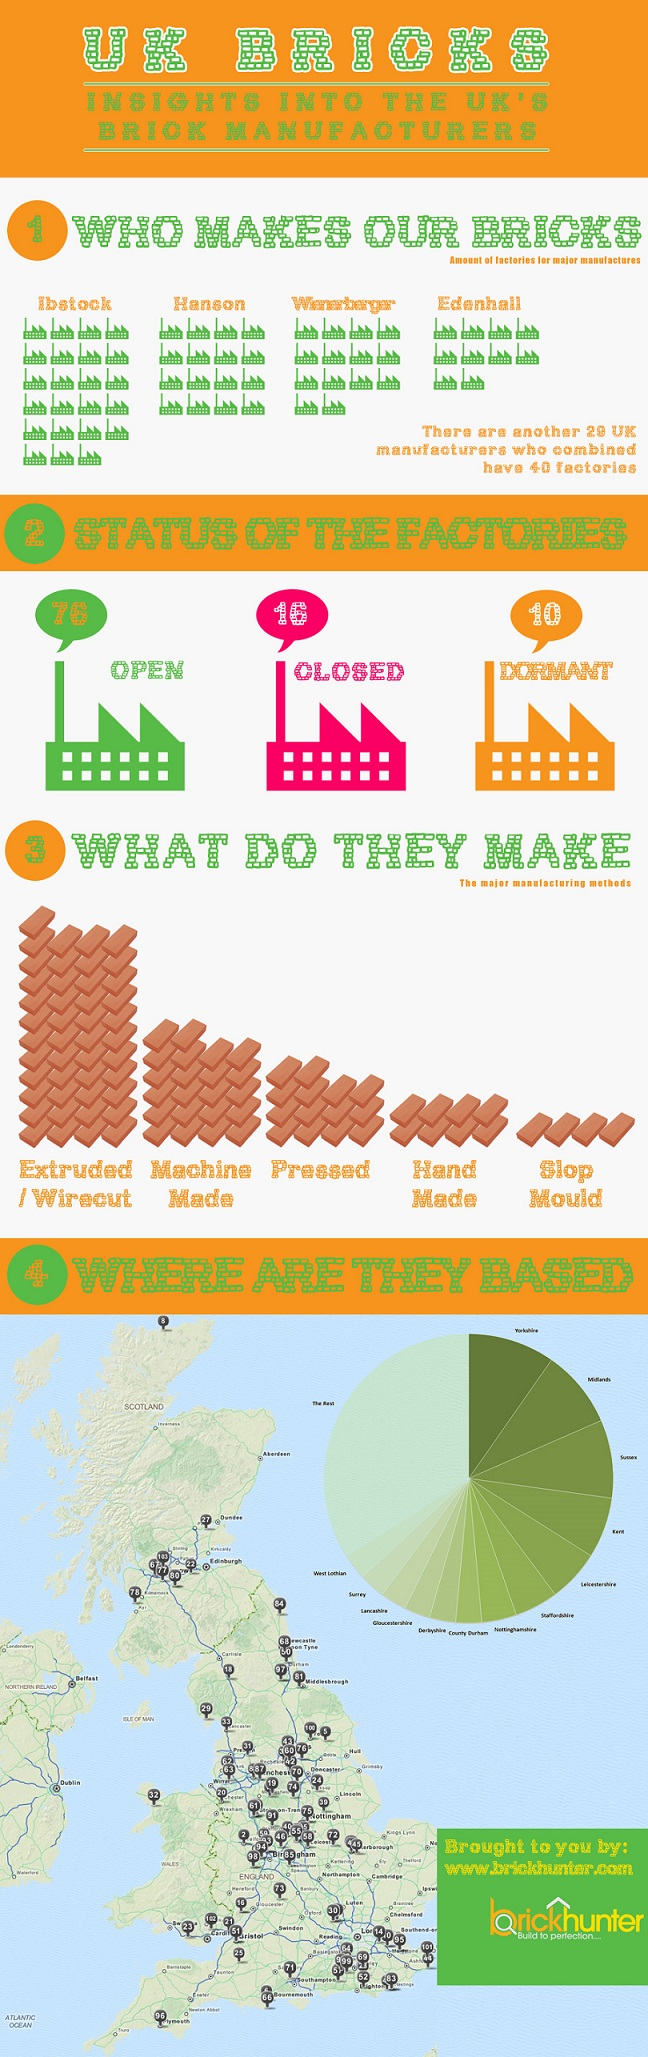 The UK Brick Industry Infographic